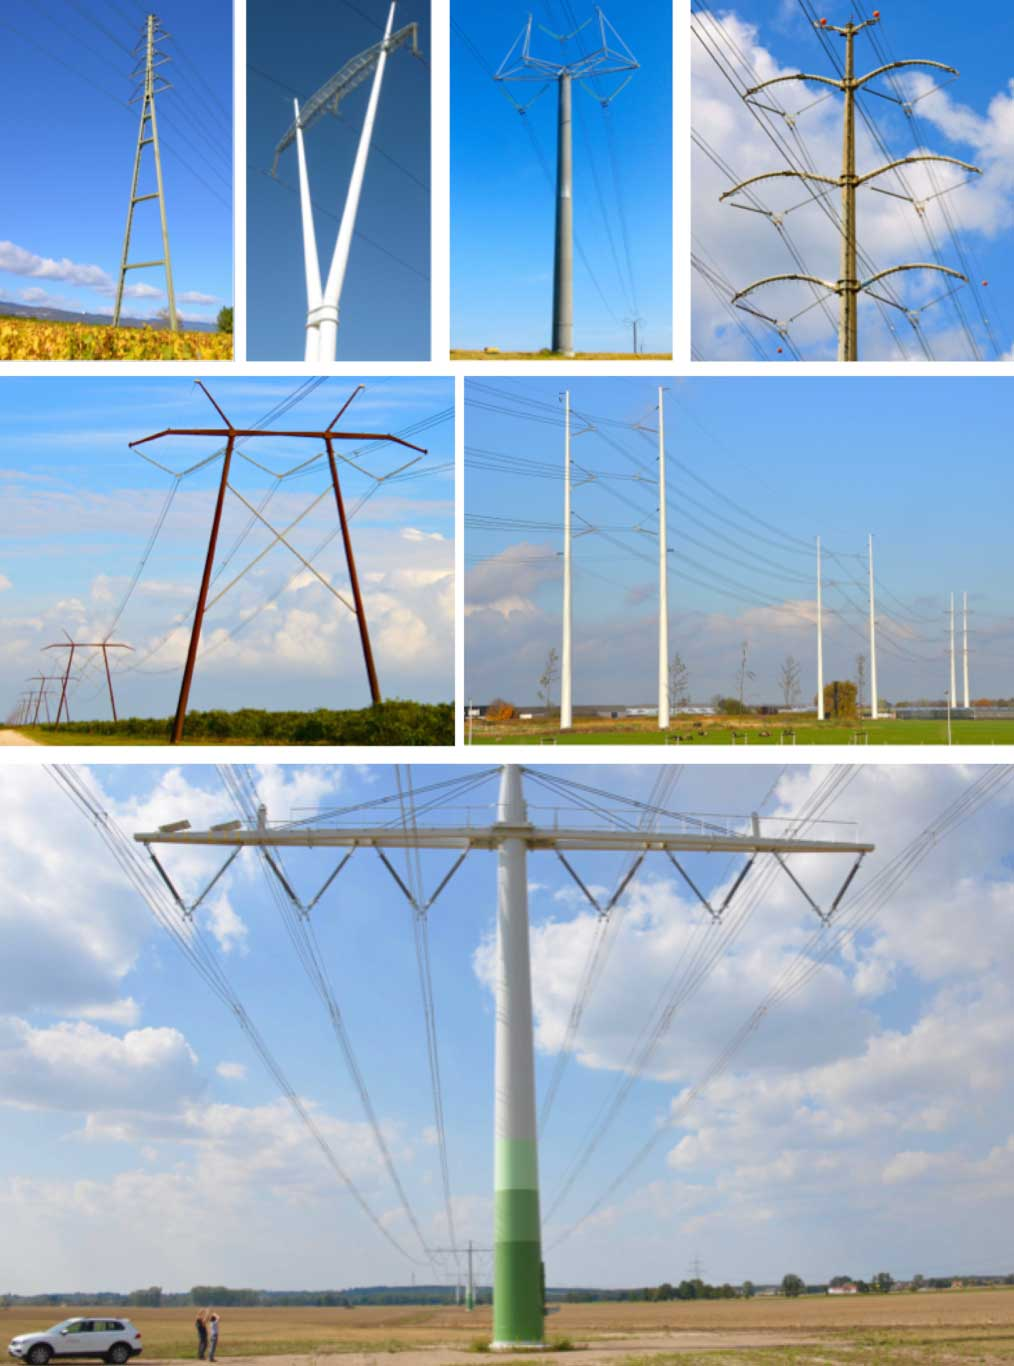 Implementing Compact Transmission Lines Experience At Canadian Utility